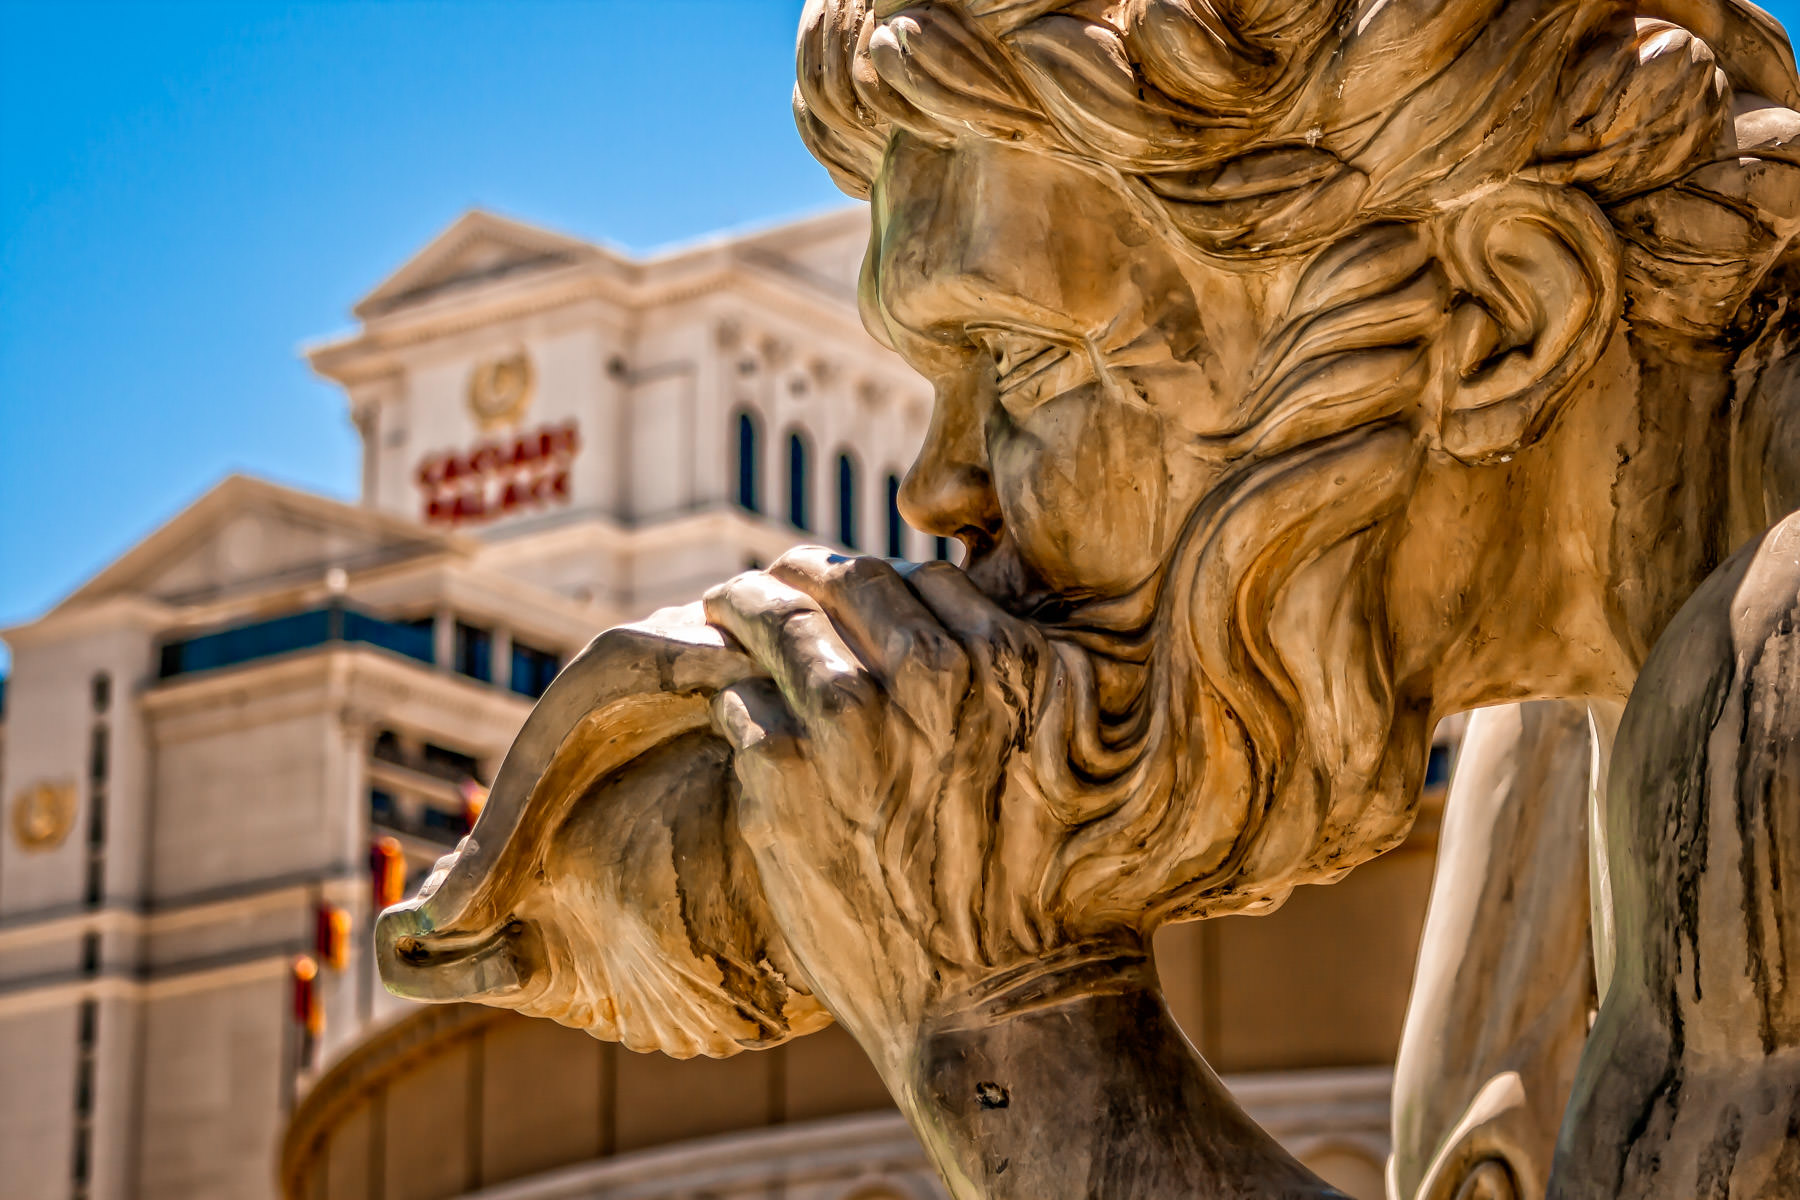 A triton at Caesars Palace's reproduction of Rome's Trevi Fountain blows his shell to announce the arrival of Oceanus' chariot.